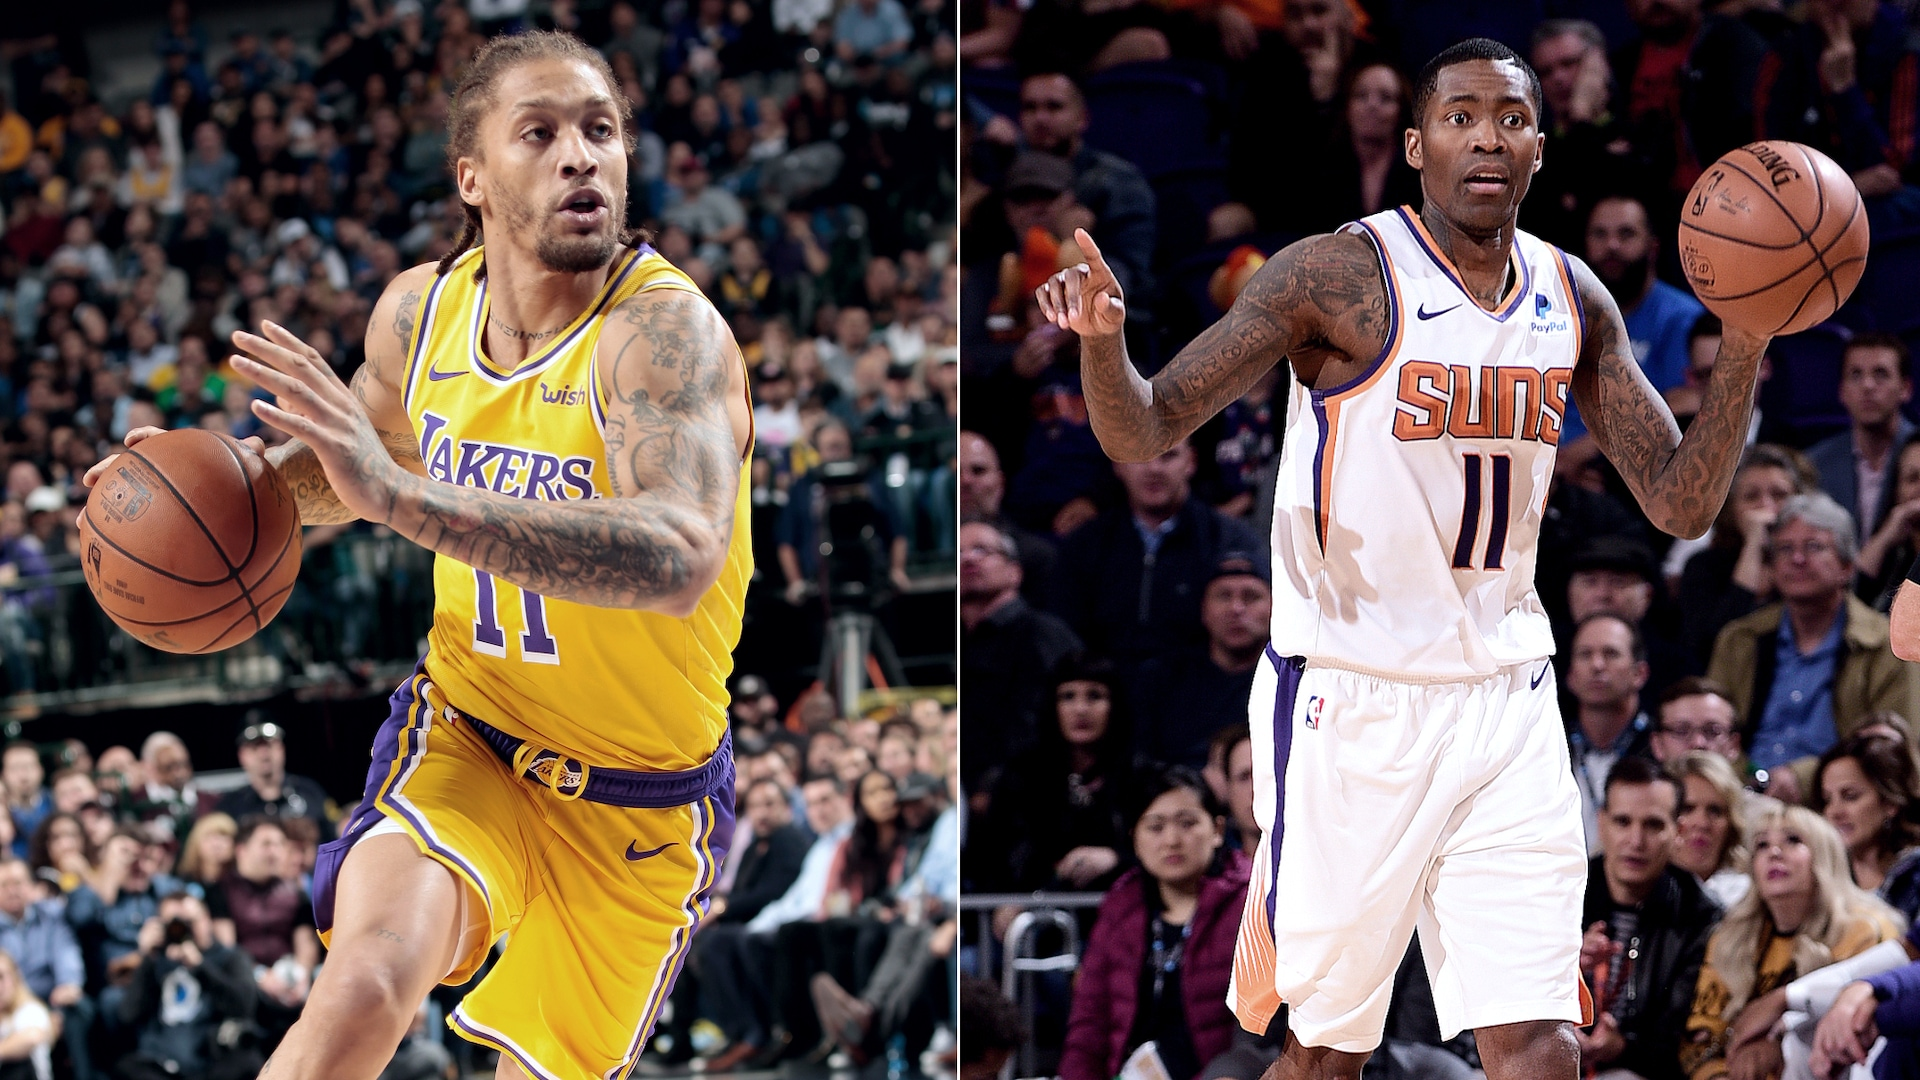 Nets sign Michael Beasley, Jamal Crawford for rest of season